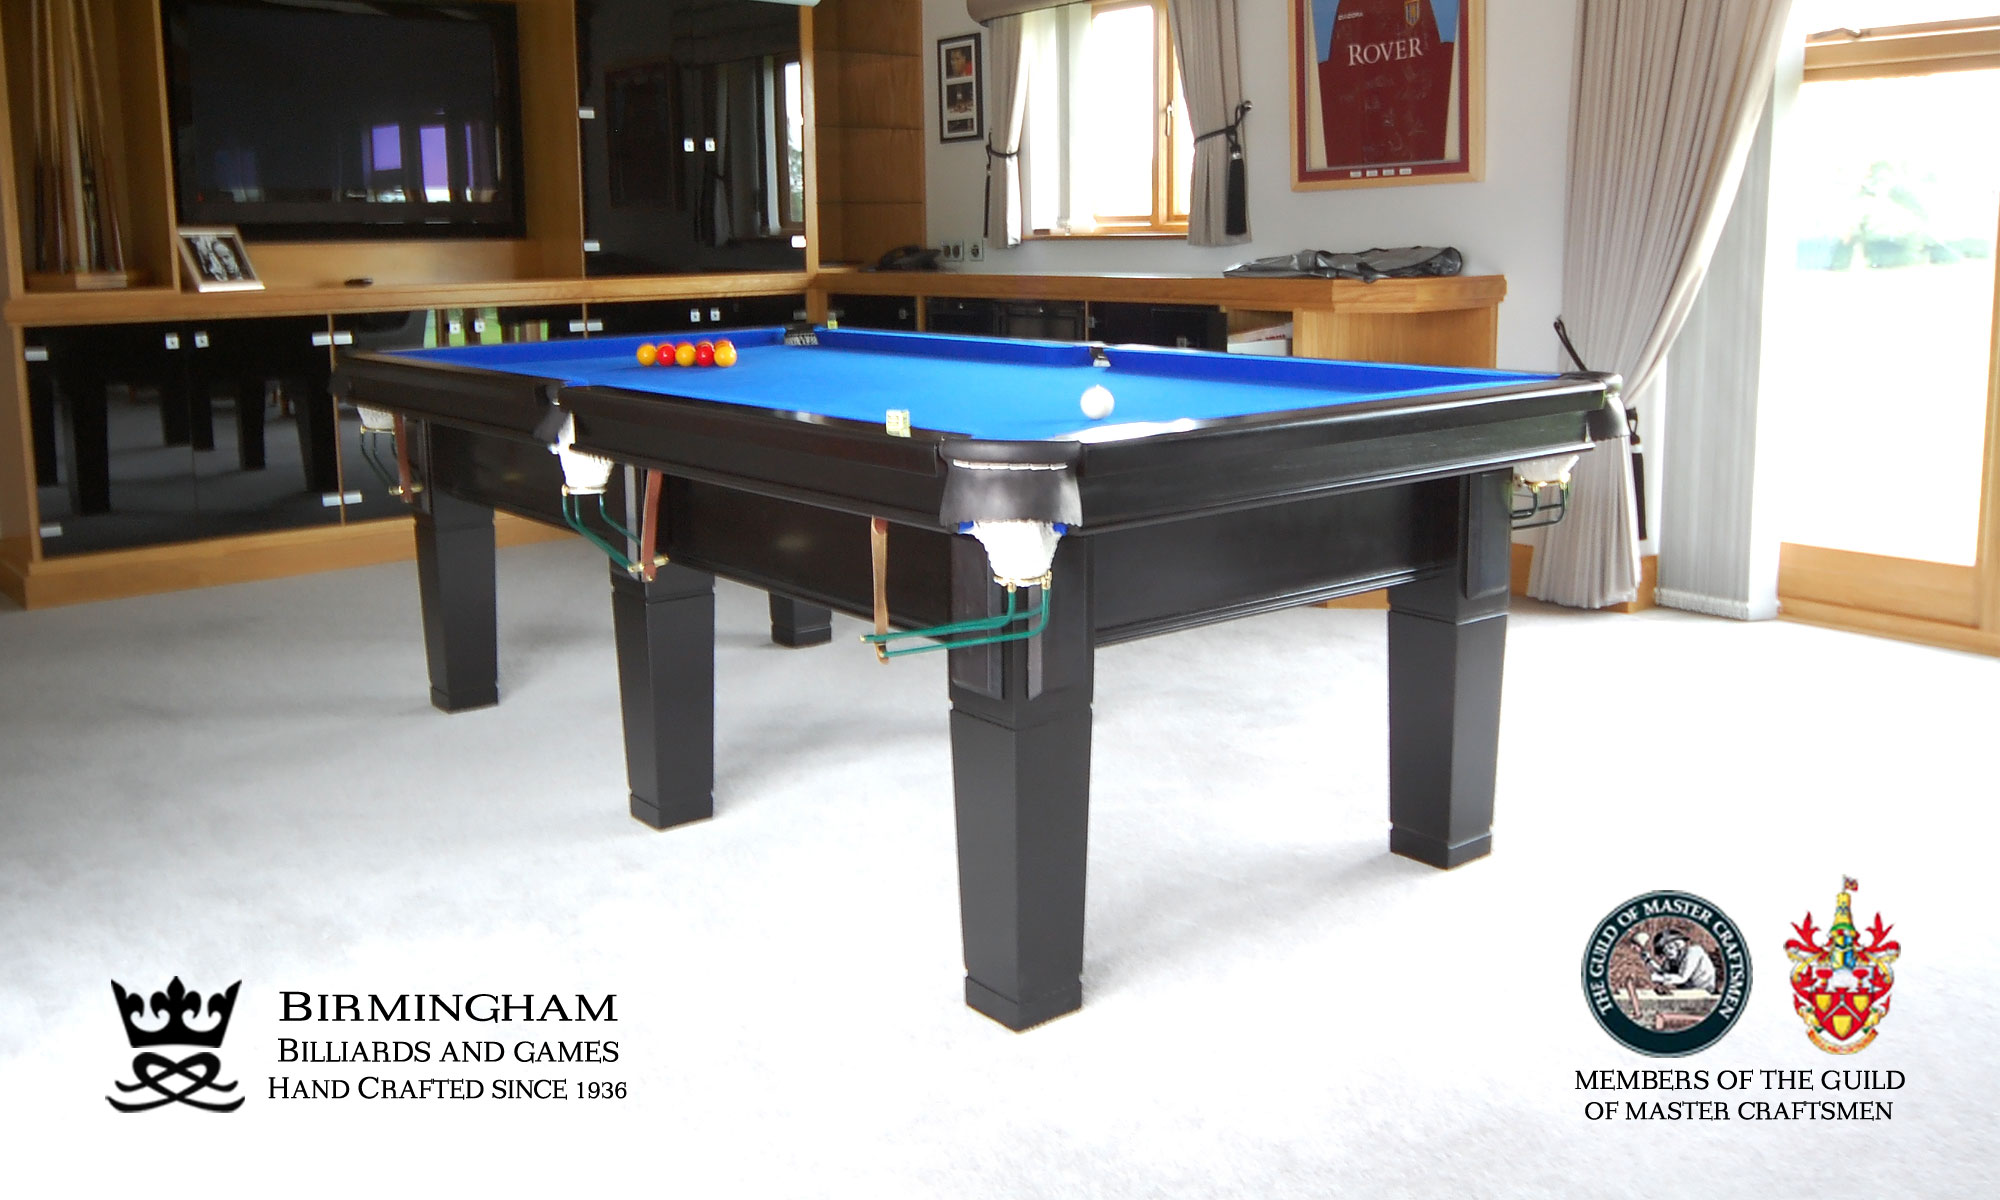 The Contemporary handmade pool table, black ebony finish, royal blue baize, side view